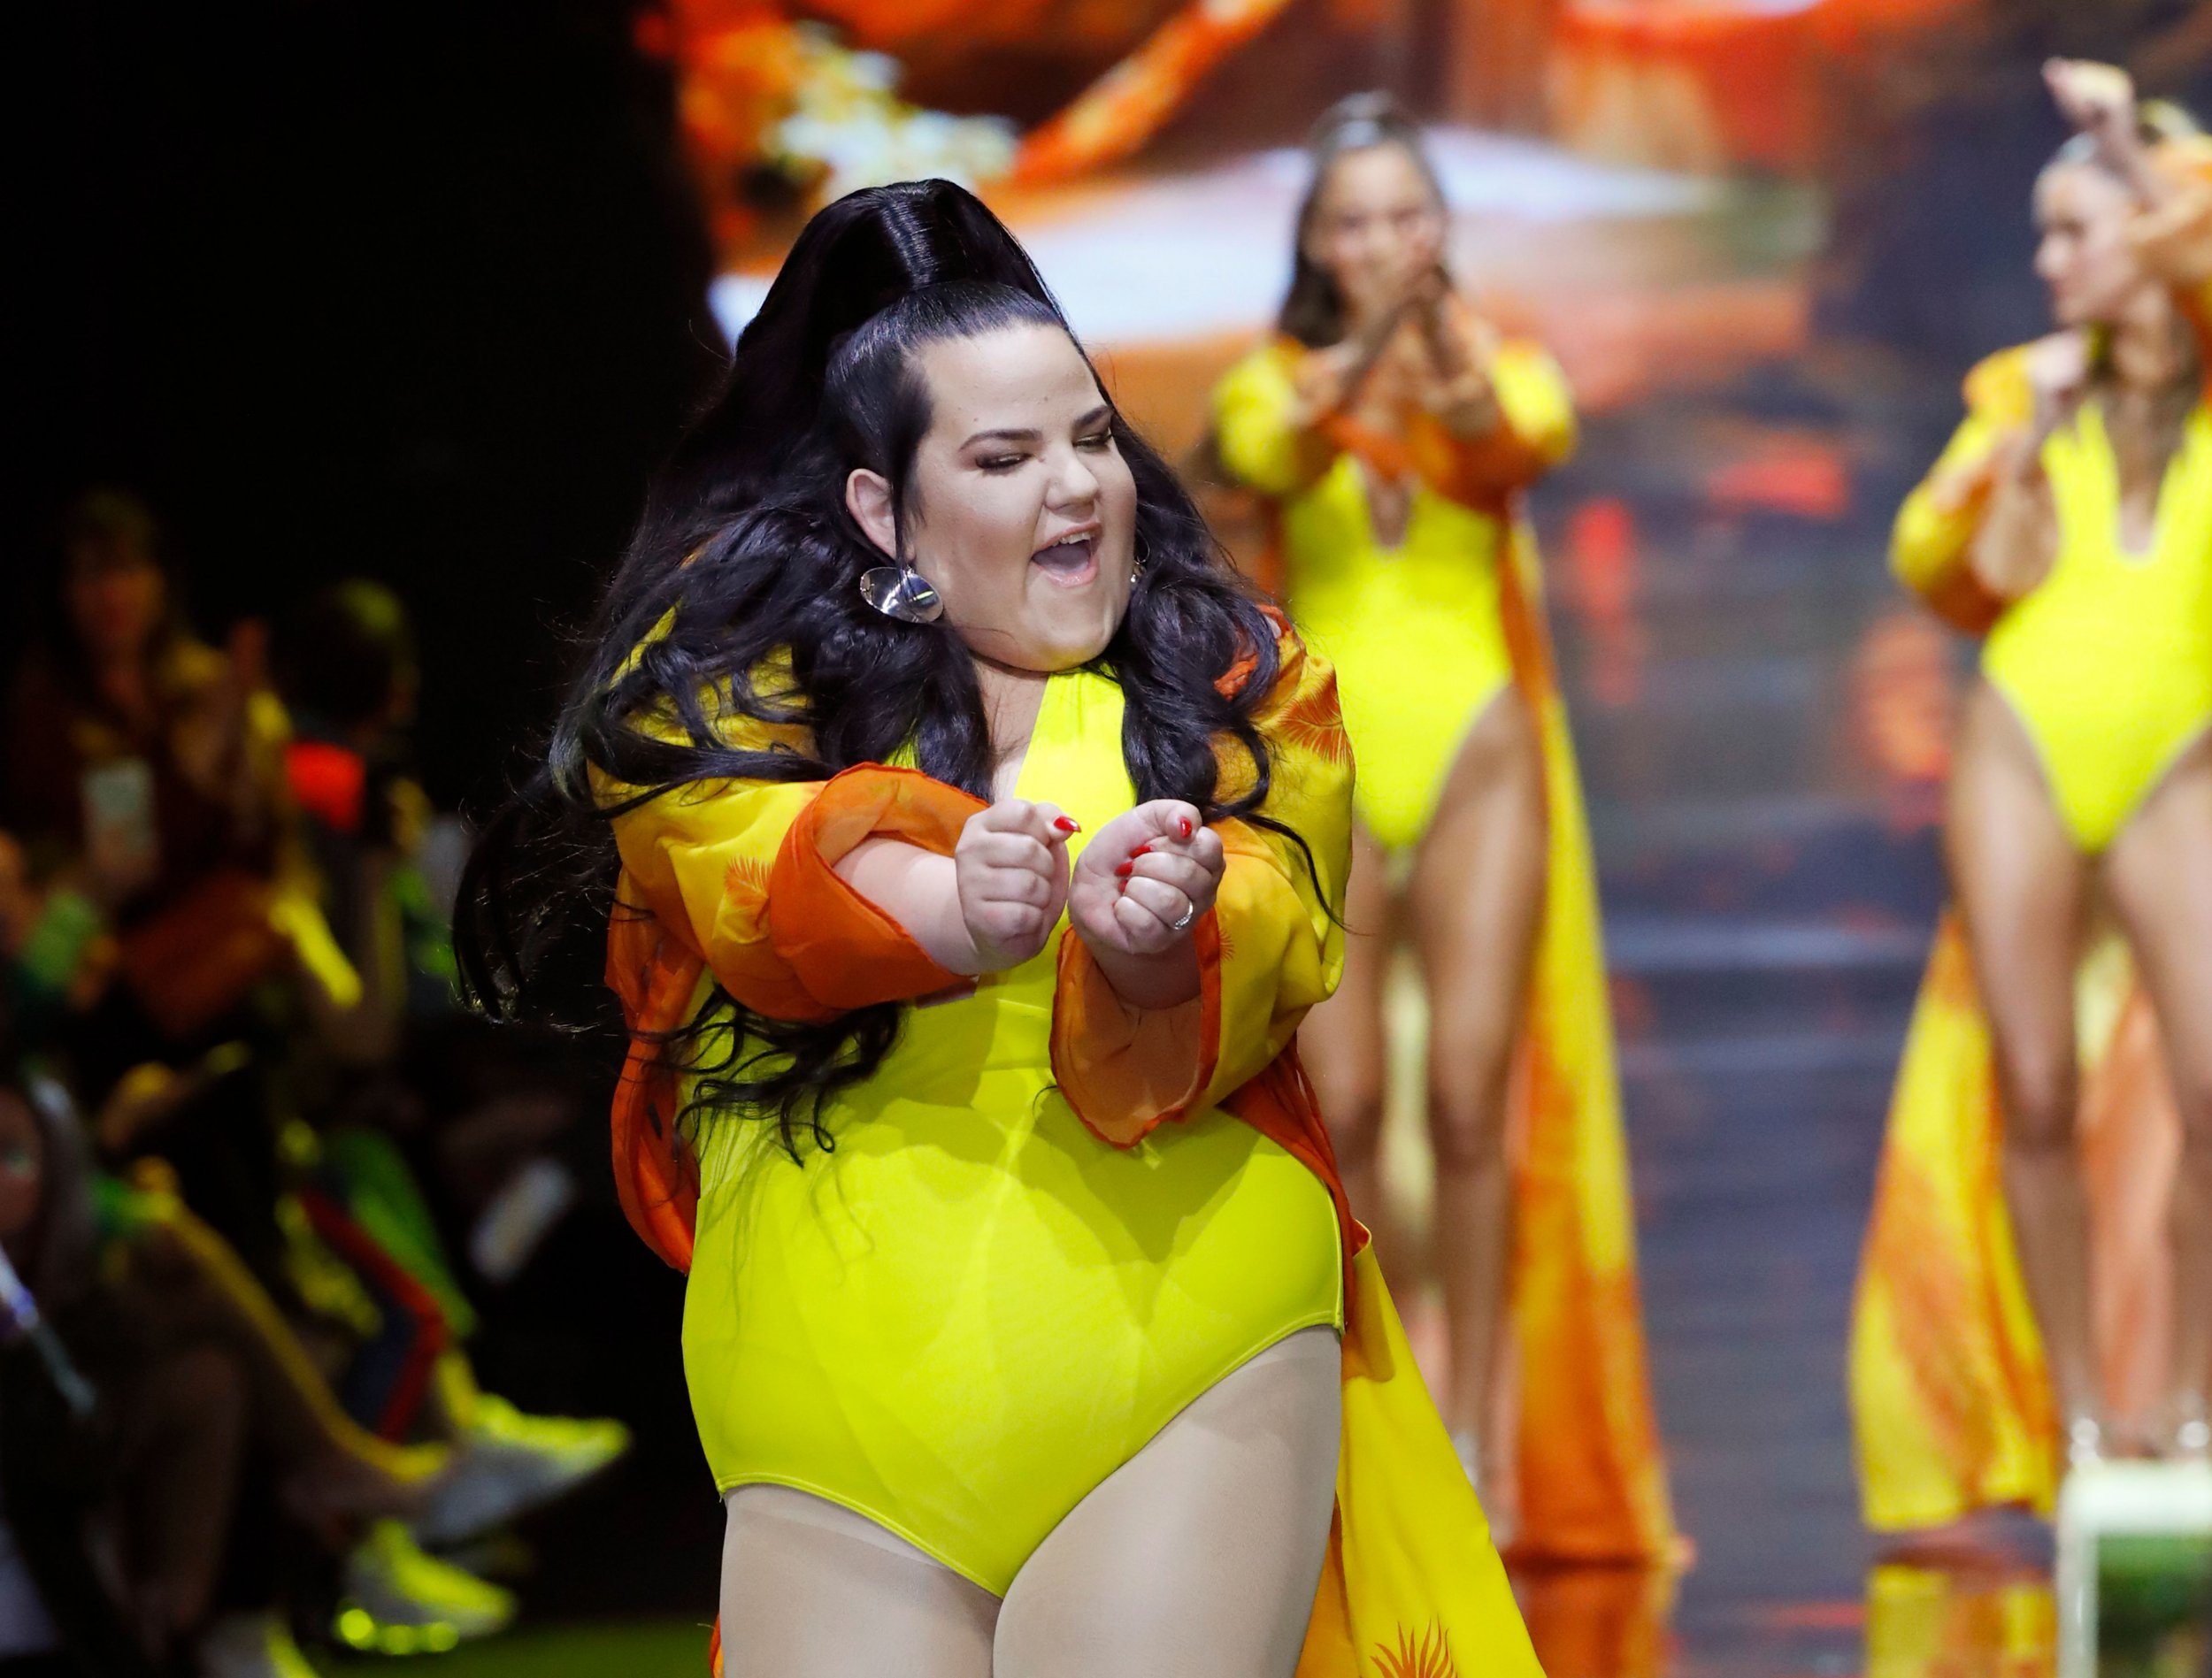 Eurovision winner Netta Barzilai looks fierce on catwalk at Tel Aviv Fashion Week